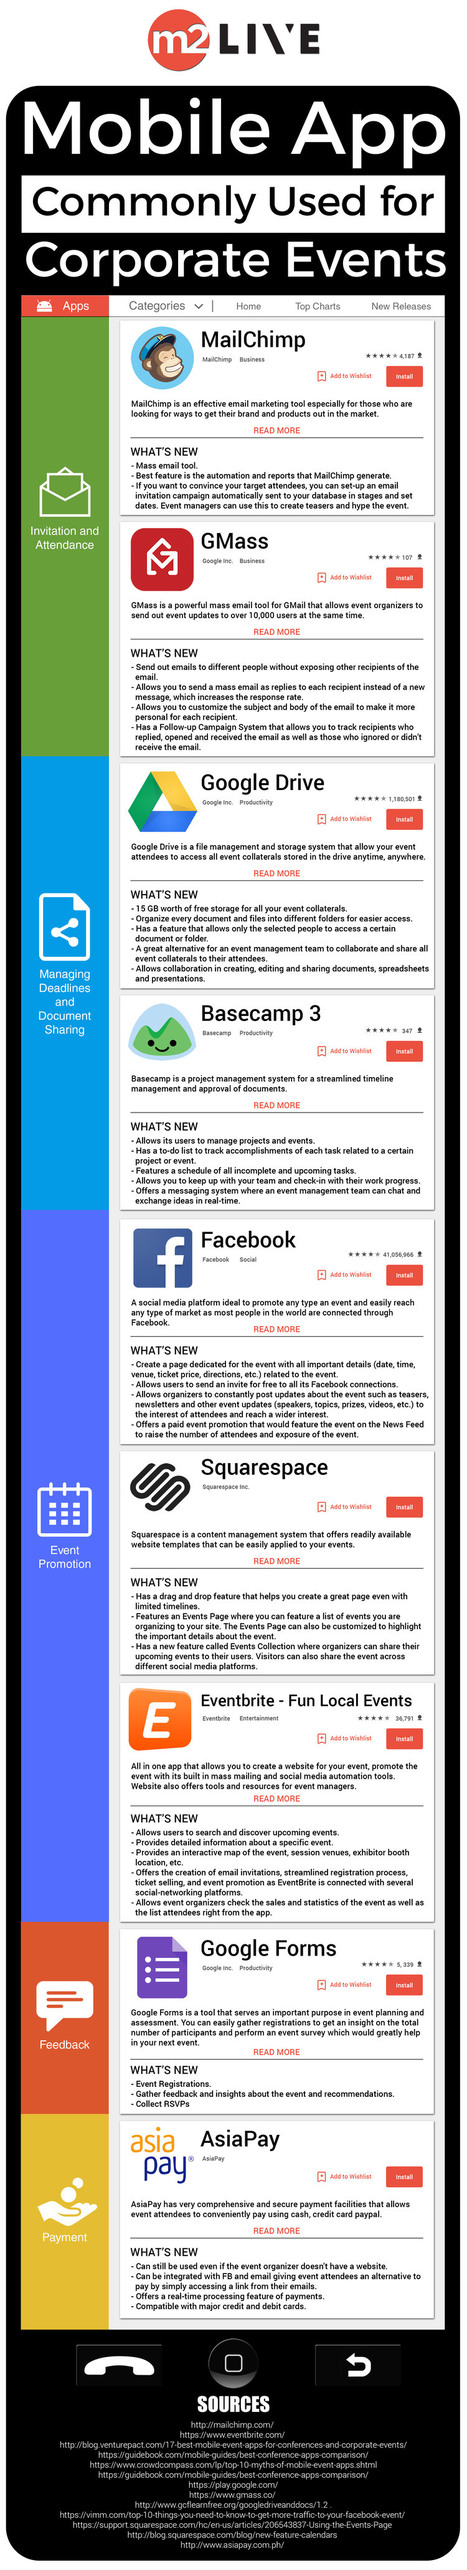 Top 9 Mobile Apps commonly used for Corporate Events | All Infographics | Scoop.it